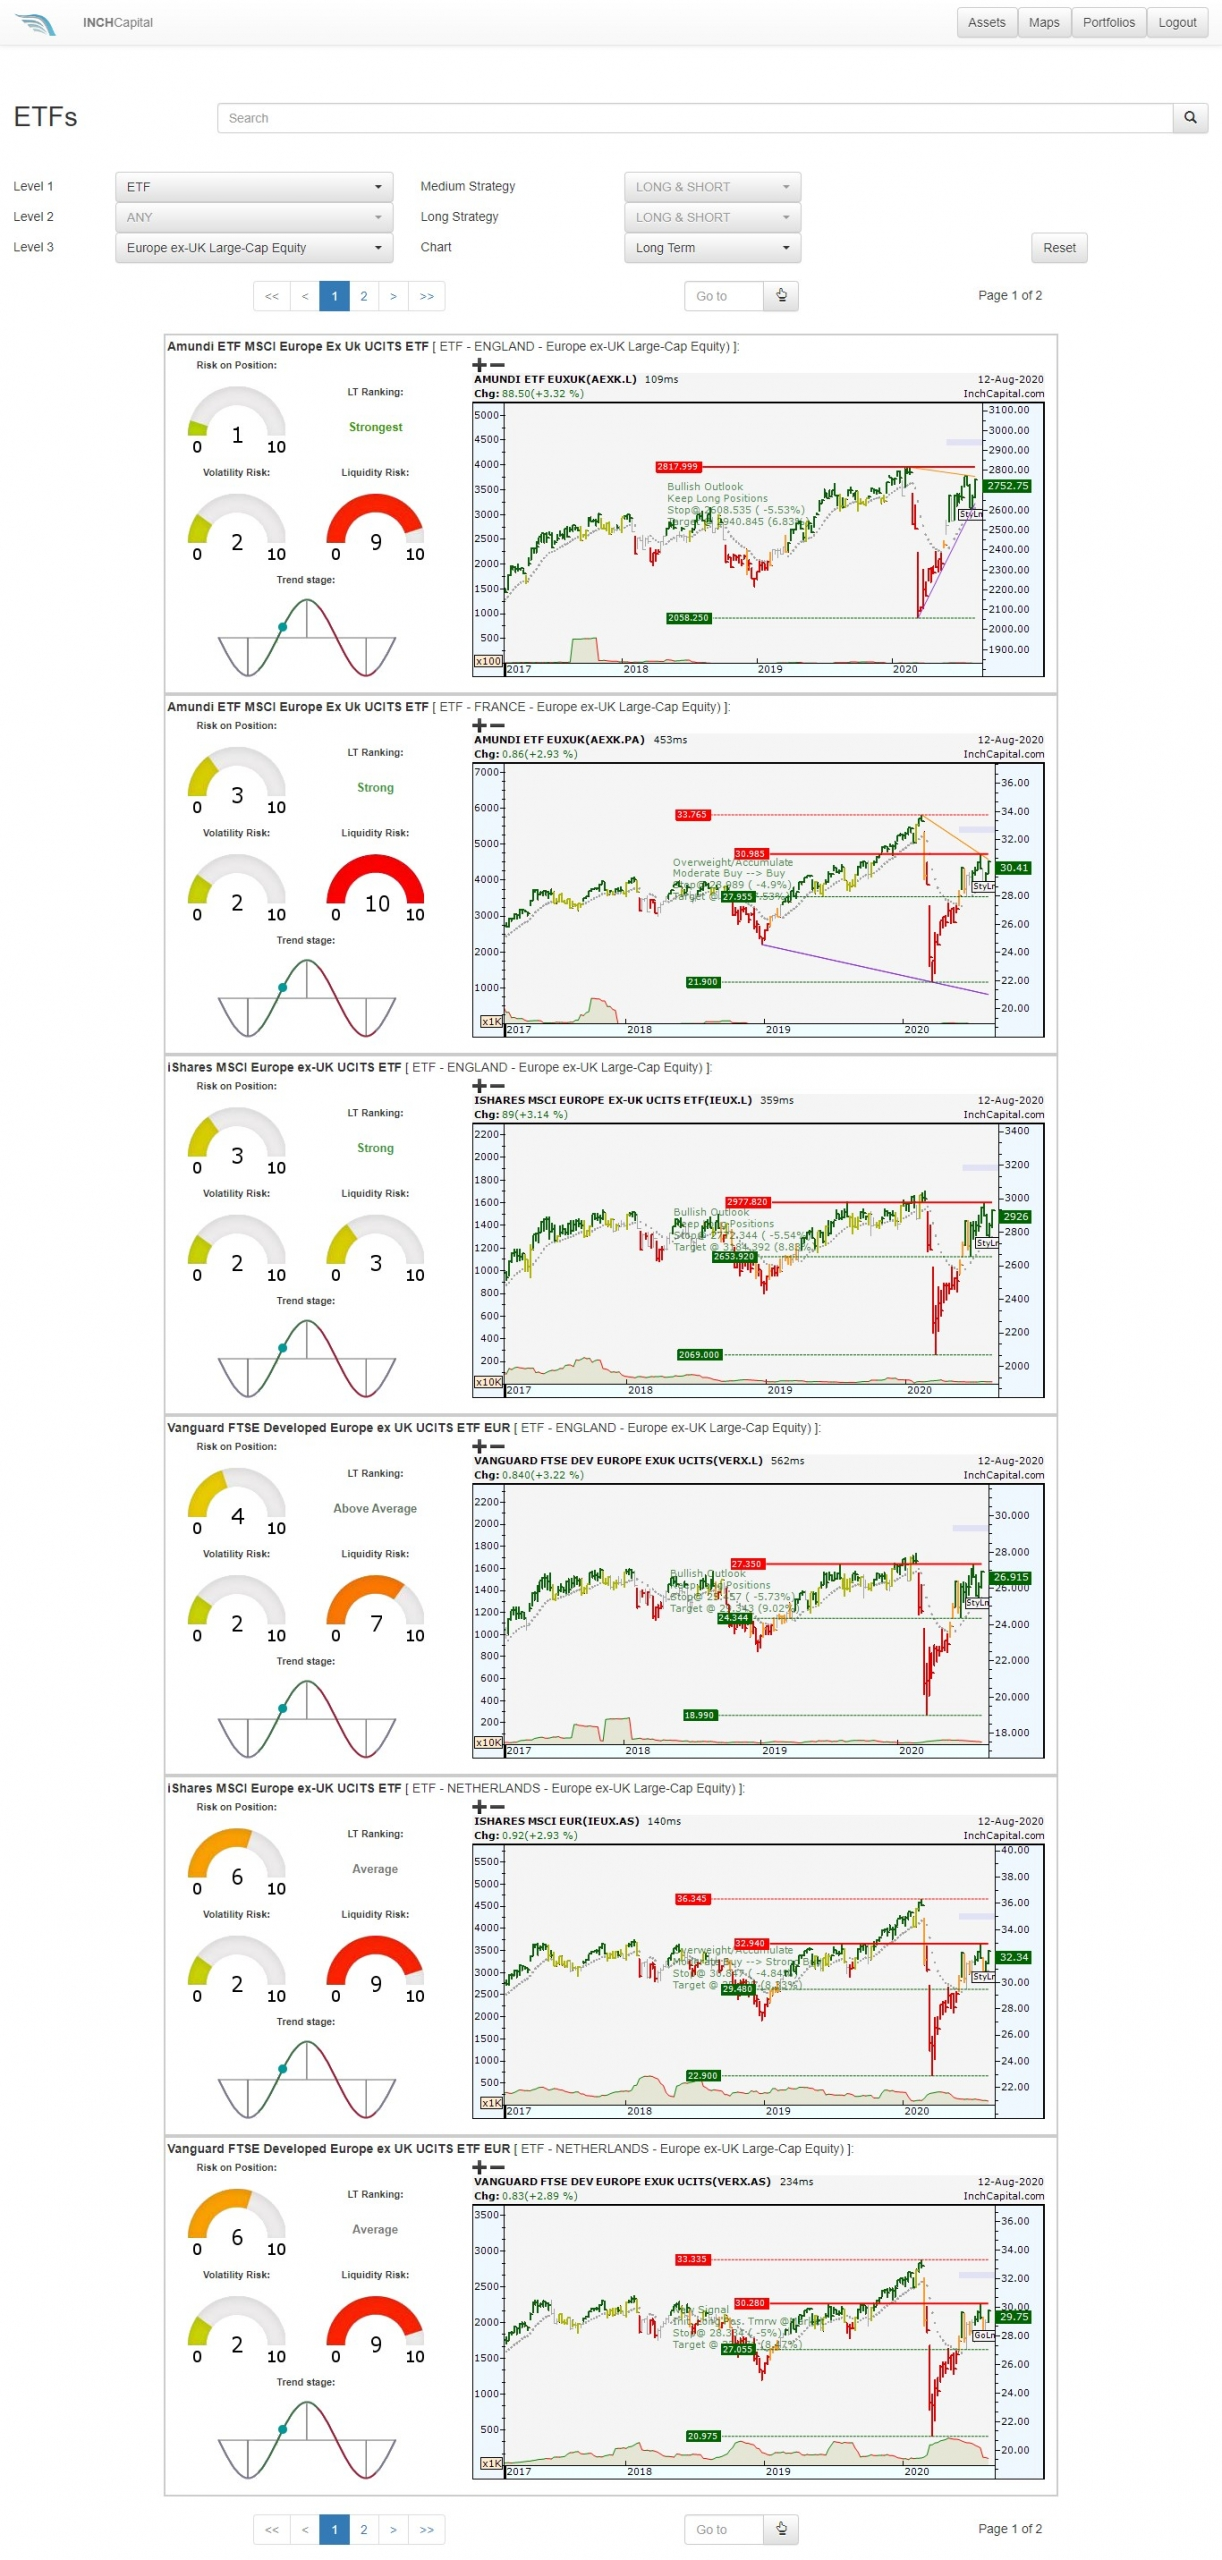 The pictures shows the Inch Platform concerning the ETFs selection. You can do it for categories and trend momentum forces.